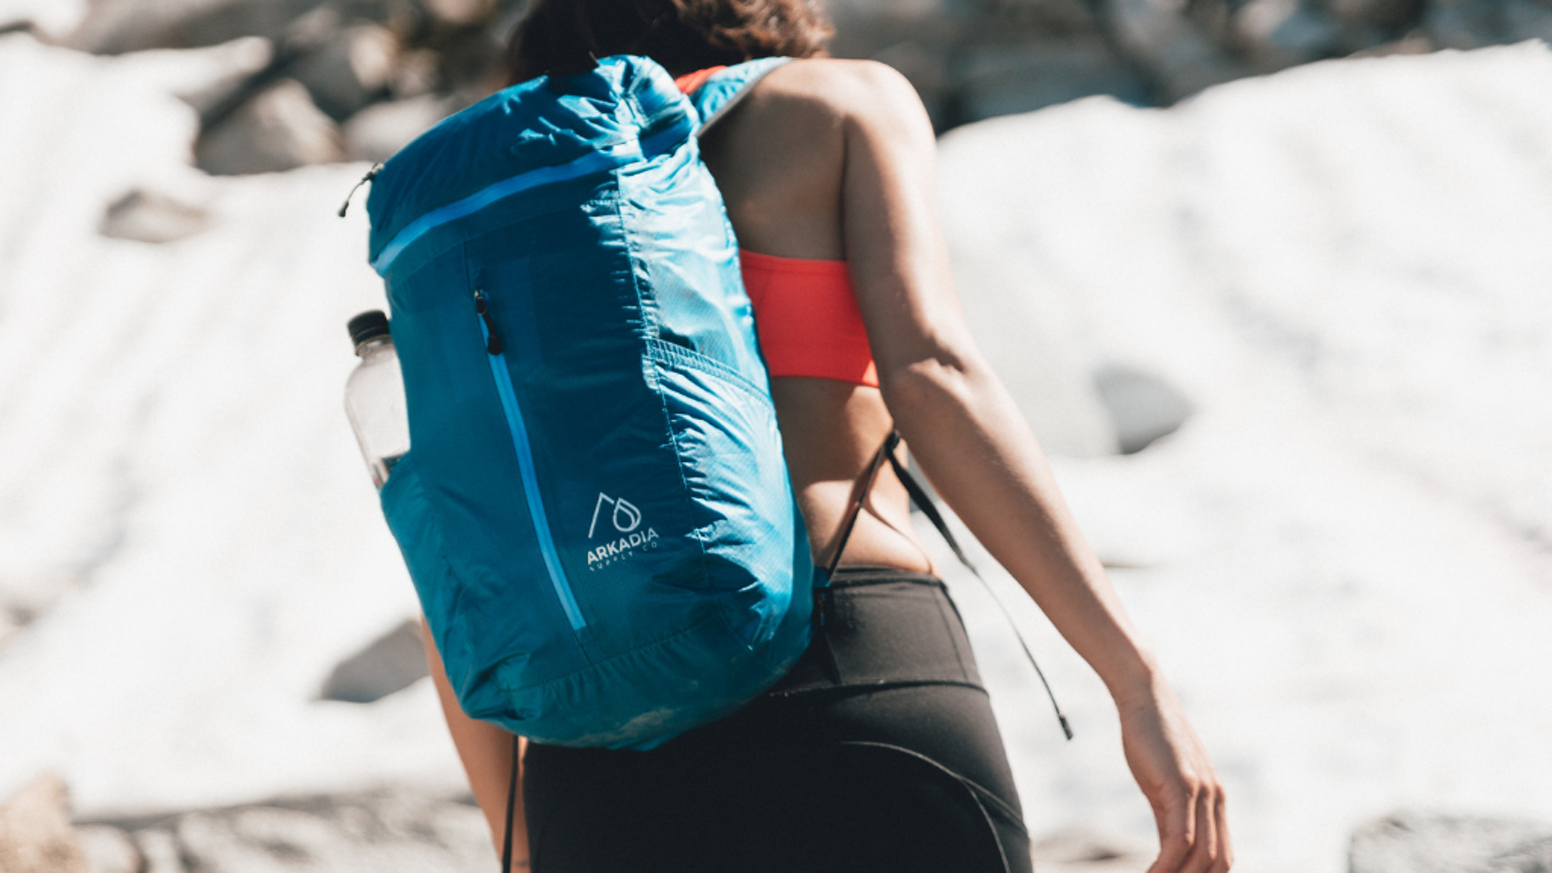 The Adventure pack redefined. 100% Waterproof, packable, durable, and versatile. Designed for those who live for adventure.